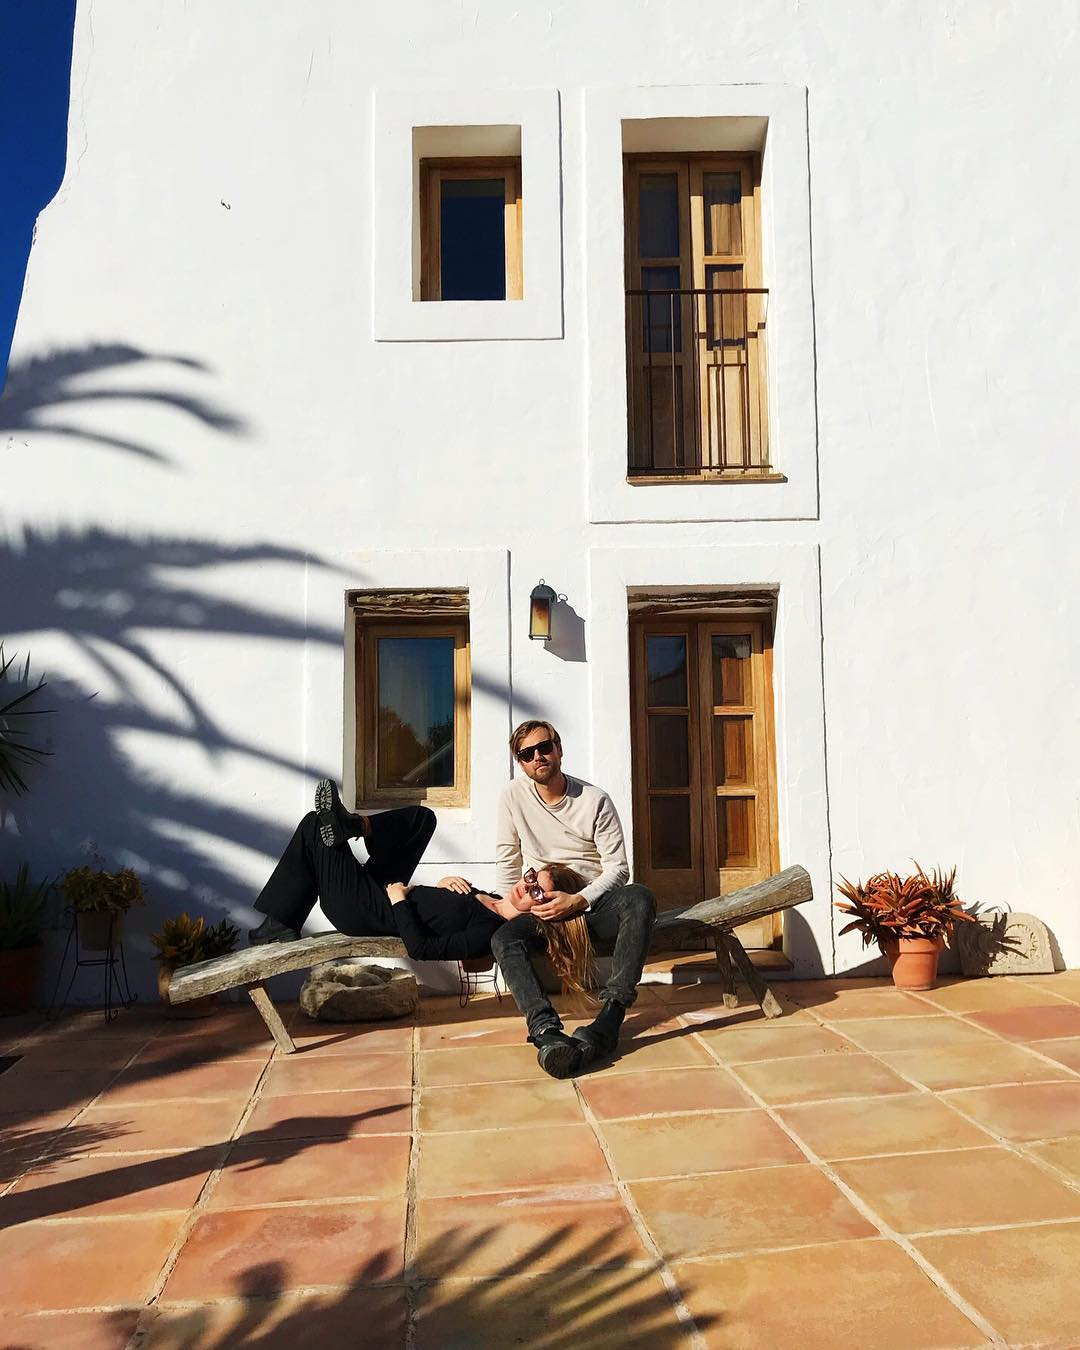 // Soaking up the winter sun // We hope you had great start into the New Year // We look forward to welcoming you this year + make 2018 a great season – Tavis + Nora {Ph. by Yvy} // #lascicadasibiza #lascicadas2018 #ibiza2018 ????????????????❤️